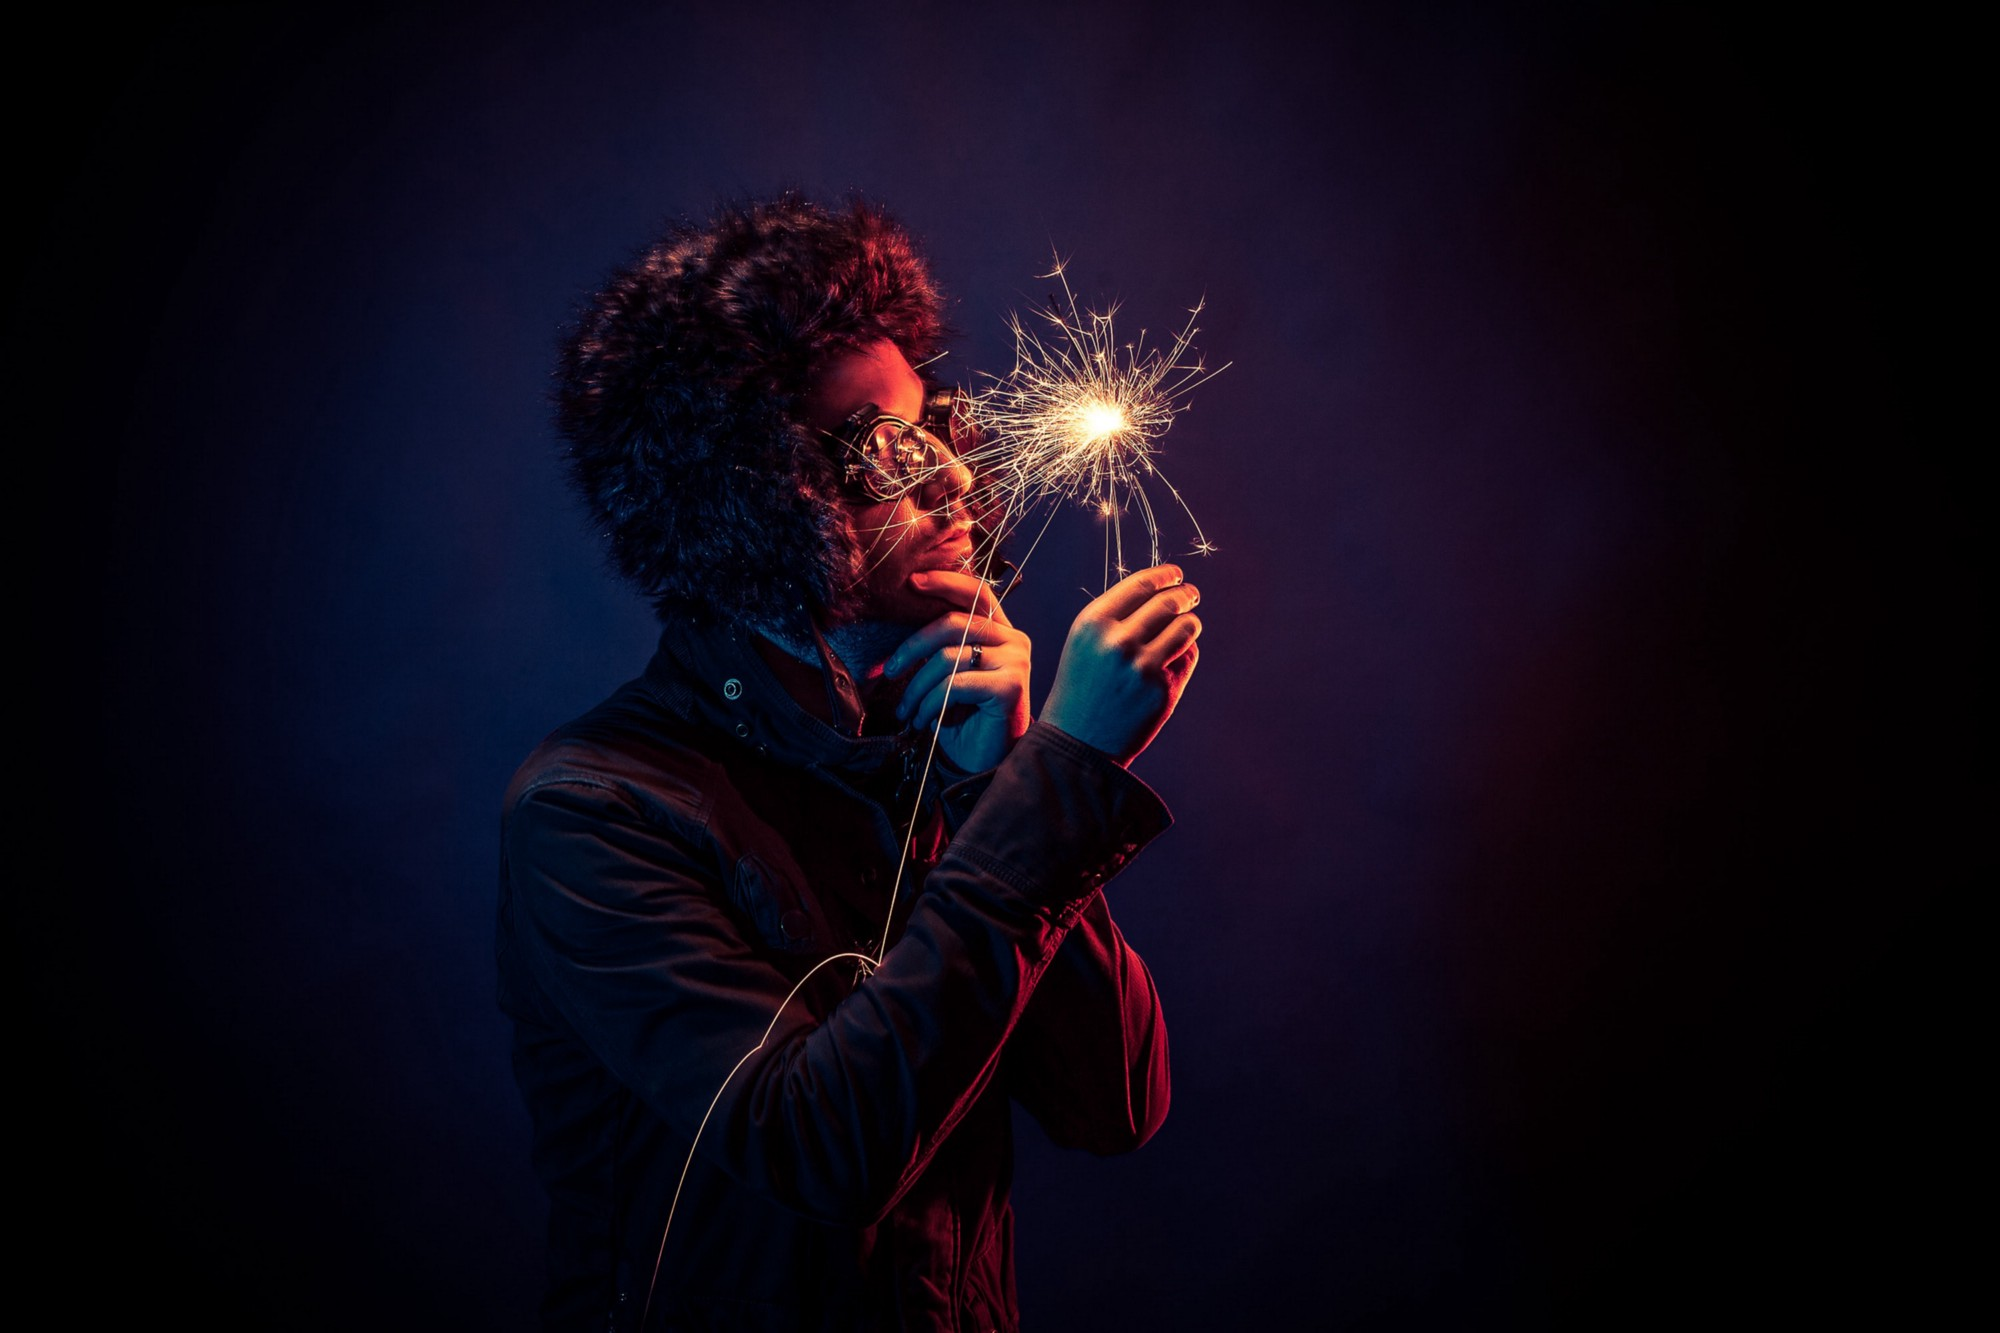 A man with a furry hat holding a sparkler.